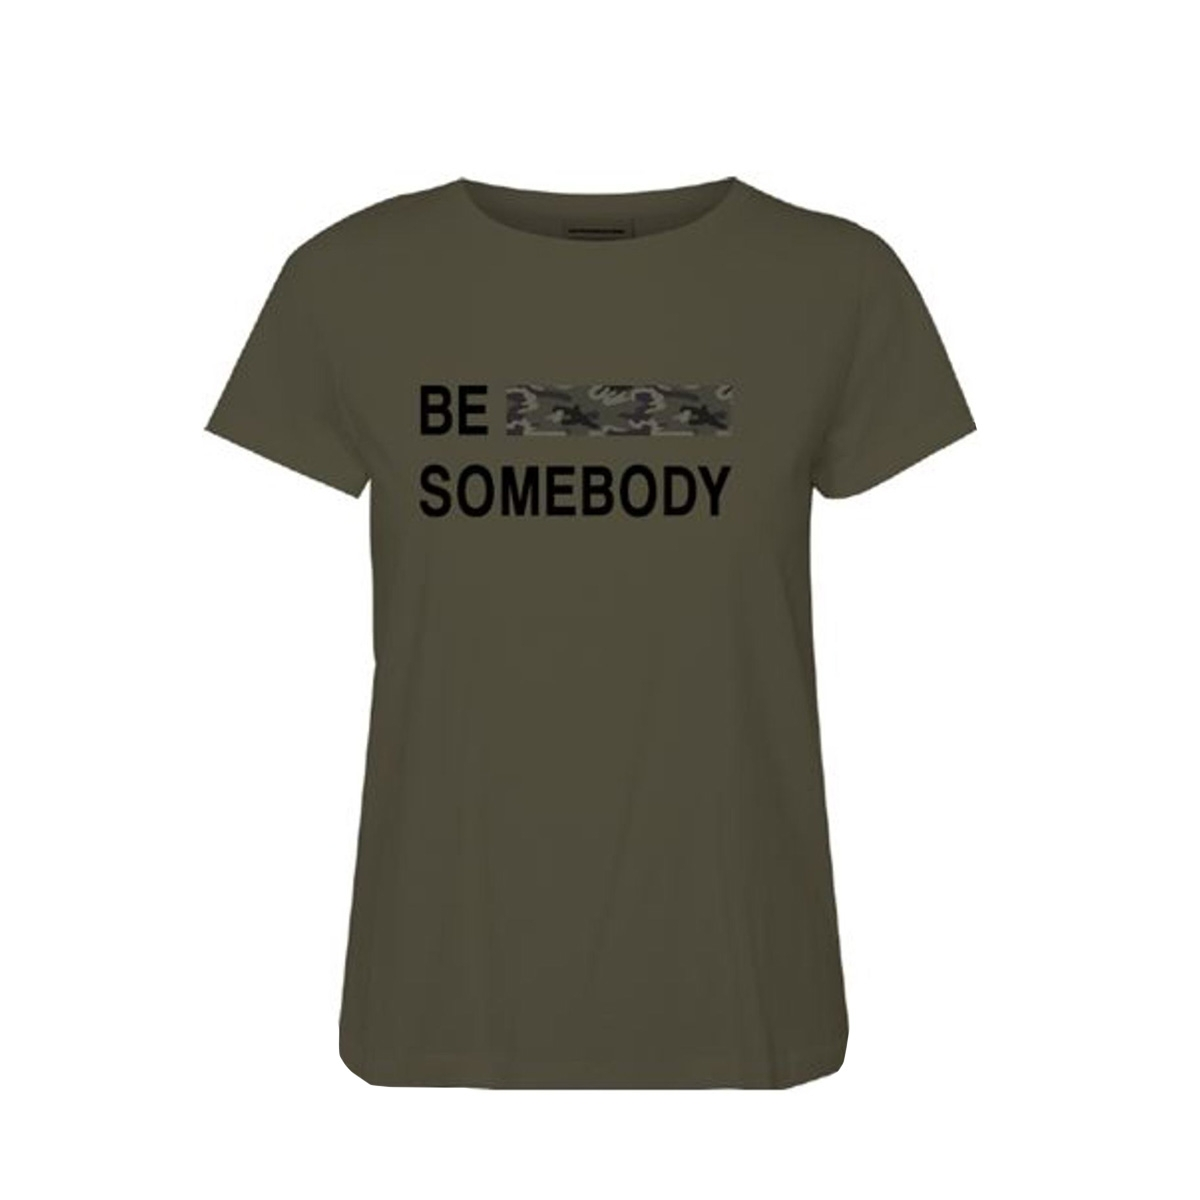 vmbe camo francis ss top box ga  jr 10219522 vero moda t-shirt ivy green/be somebod